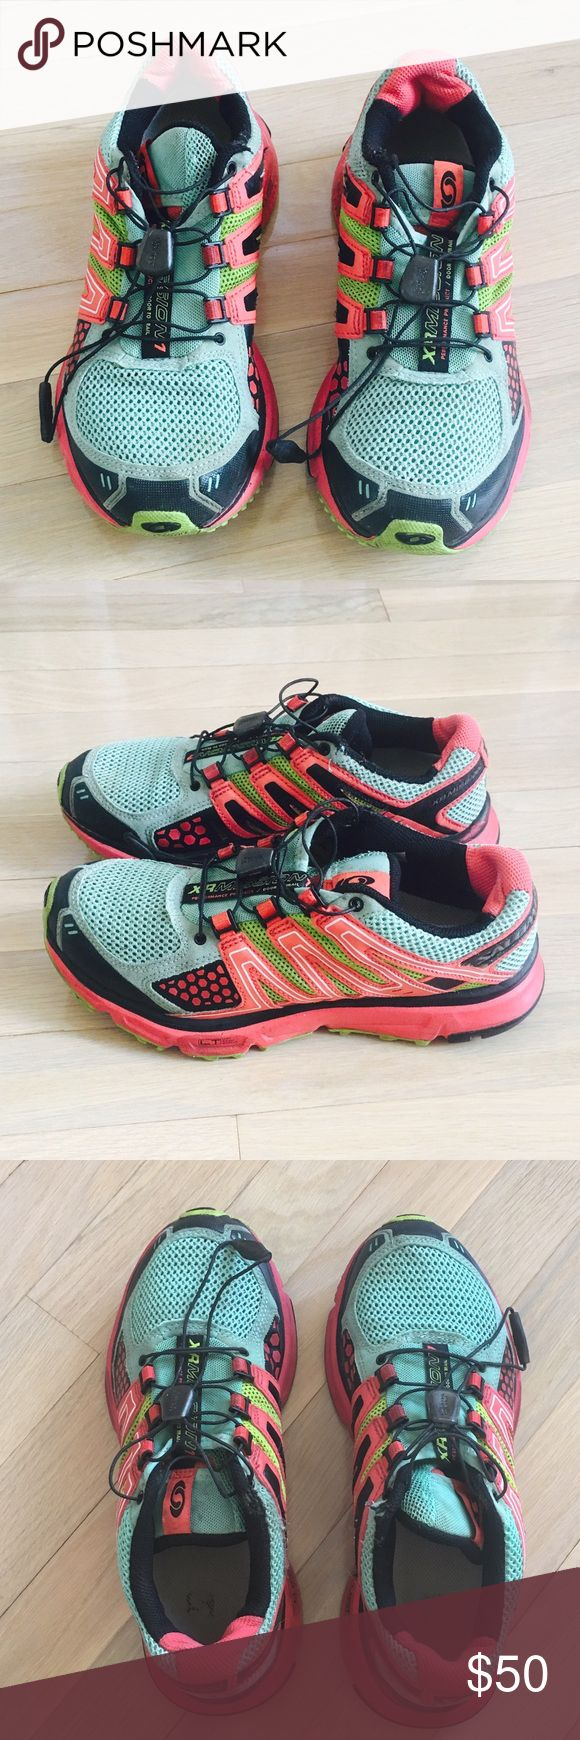 Solomon XR Mission1 trail shoes salomon trail running shoes, Breathable mesh upper reduces moisture buildup Sensifit and Sensiflex promote smooth motion foam footbed reduces friction Rugged Contagrip outsole for traction Quicklace system for fast, secure lacing Salomon Shoes